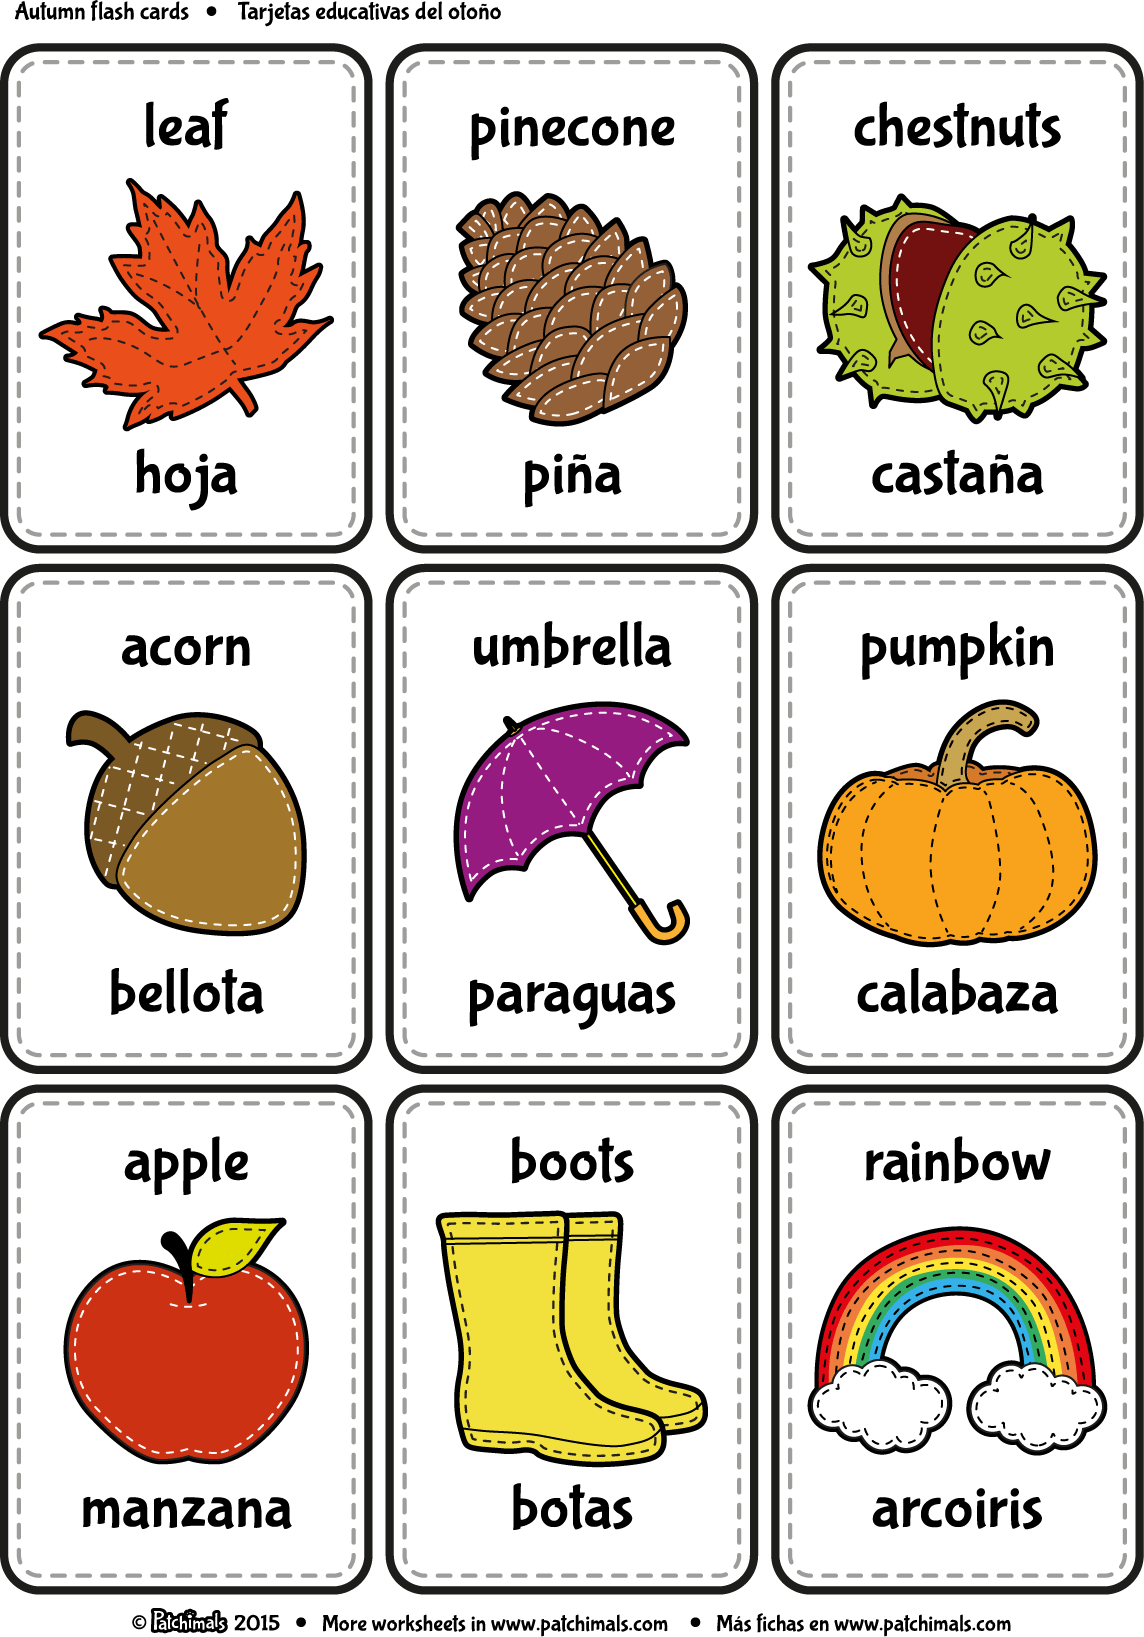 Opposites Worksheet Thanksgiving